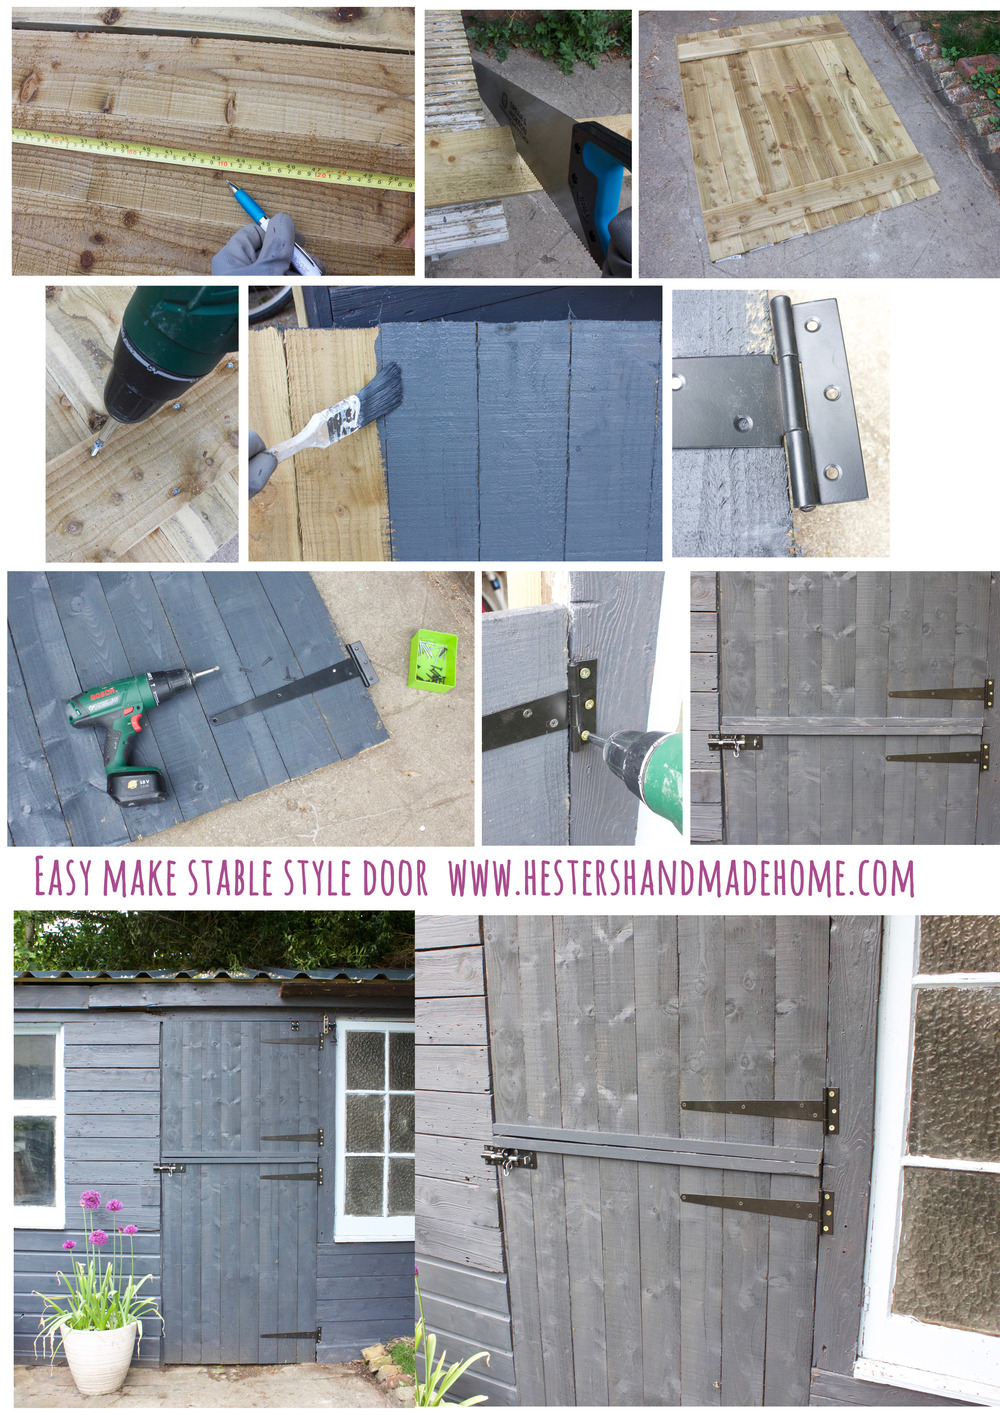 easy to make stable door, tutorial by Hesters Handmade Home